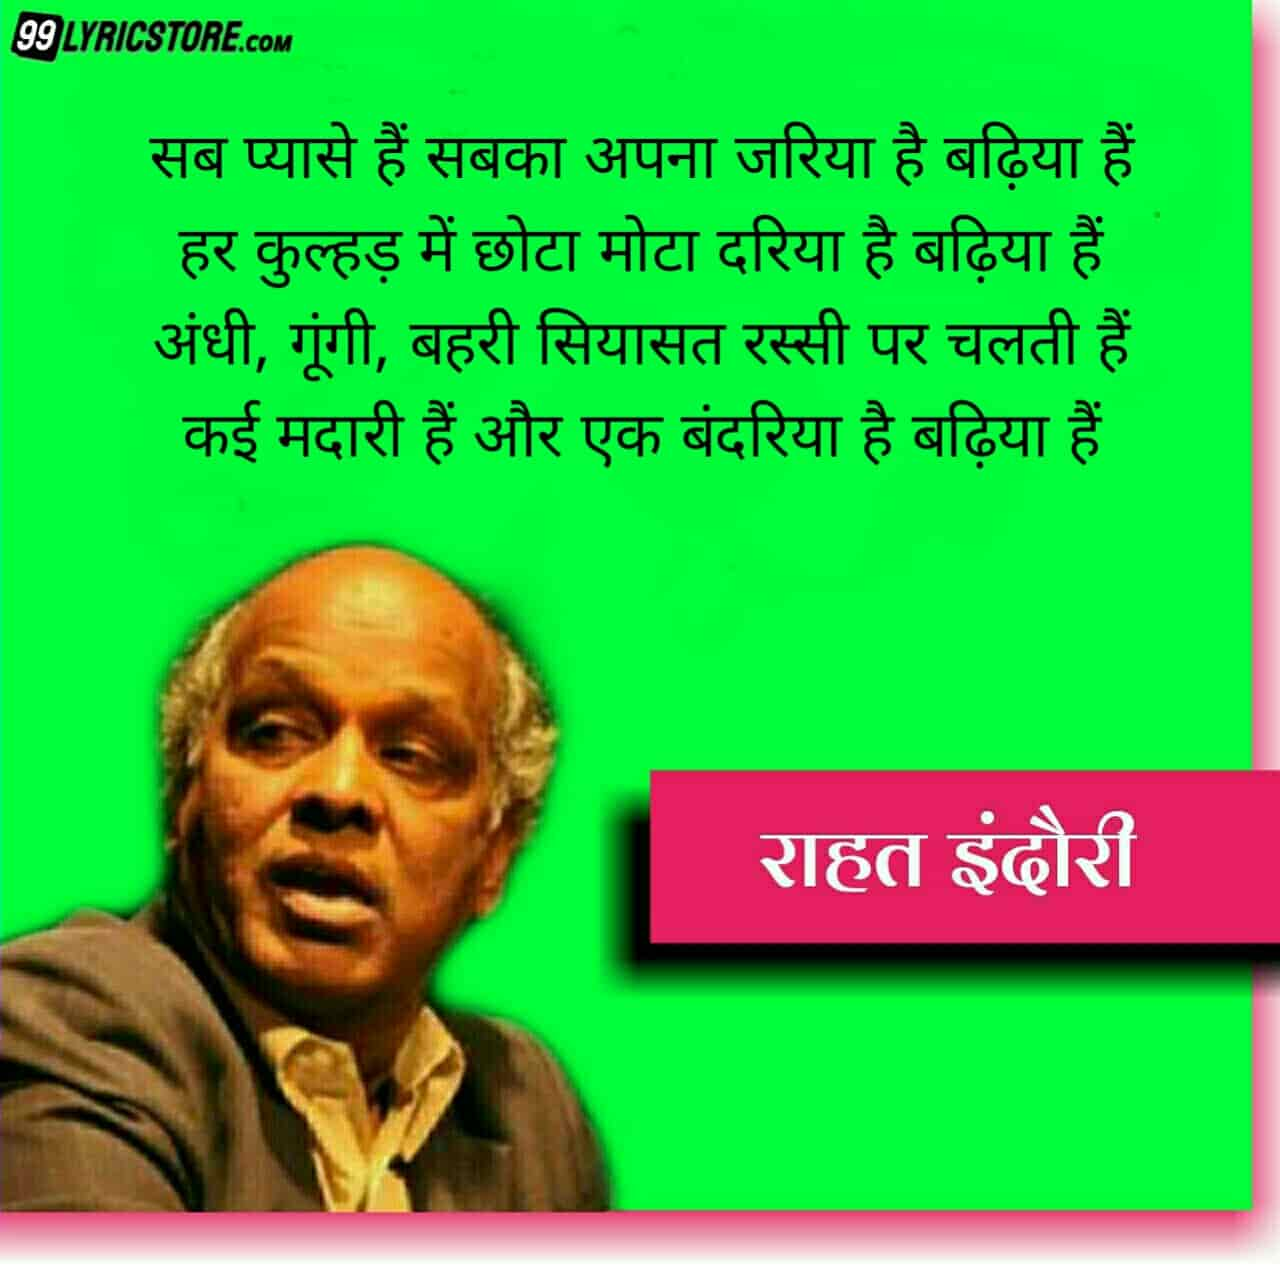 This Poetry 'Sab Pyaase Hain Sabka Apna Zariya Hai Badhiya Hai' has written and performed by Rahat Indori.